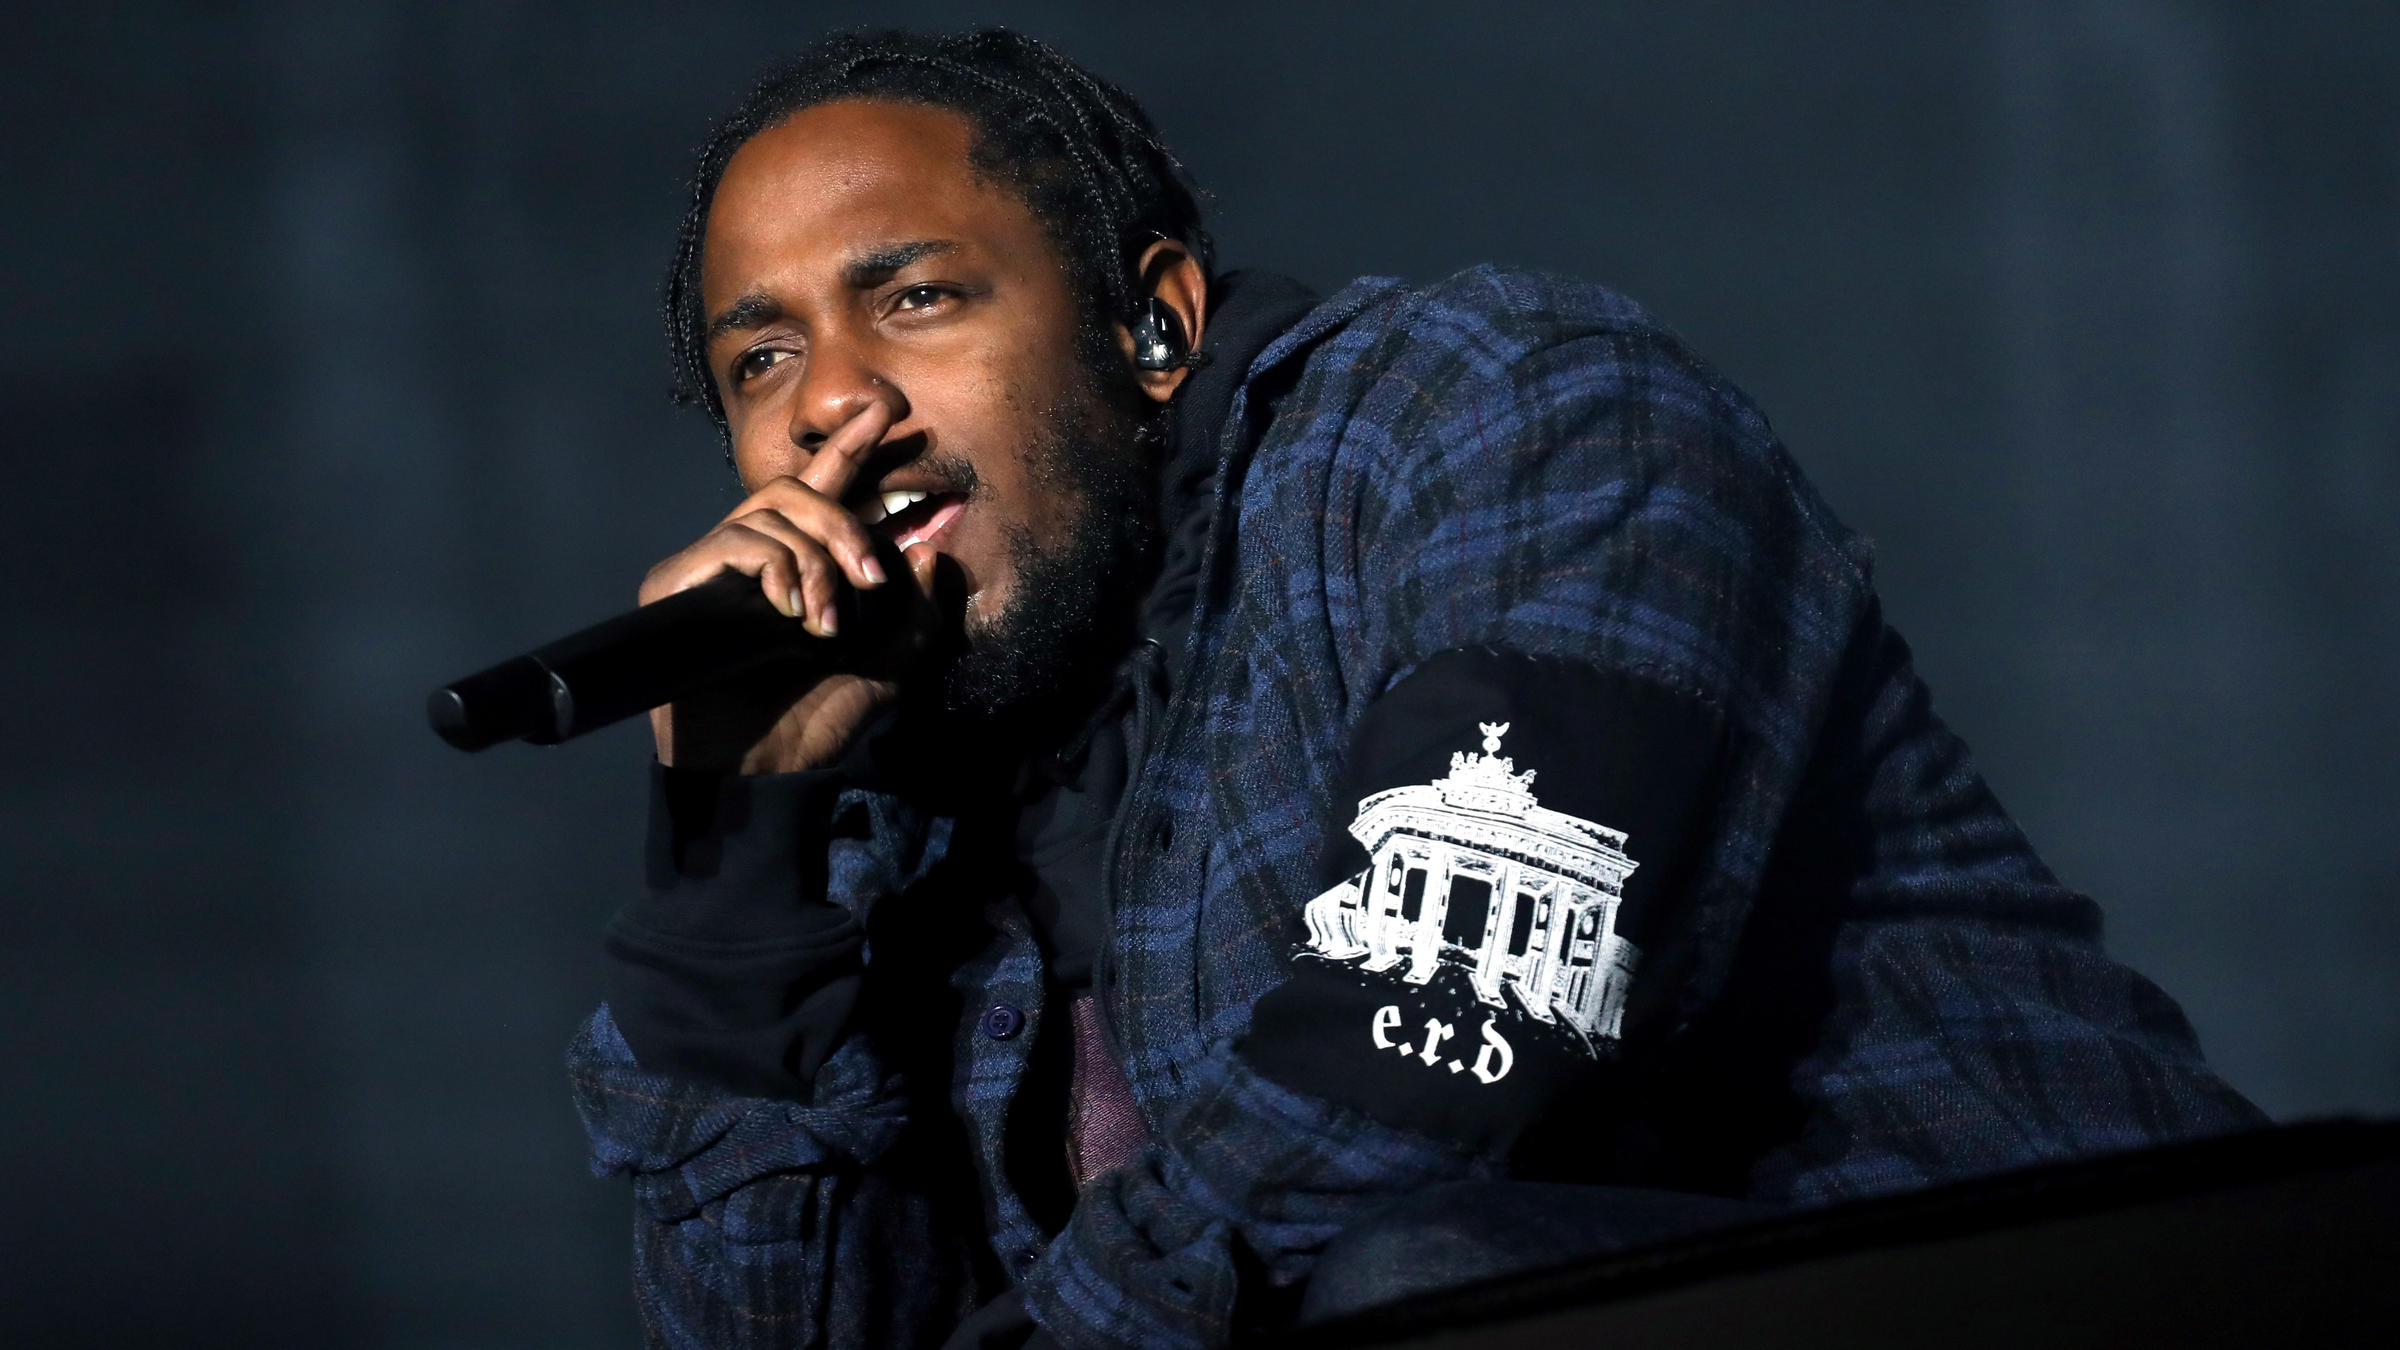 Kendrick Lamar's new album arrives April 14